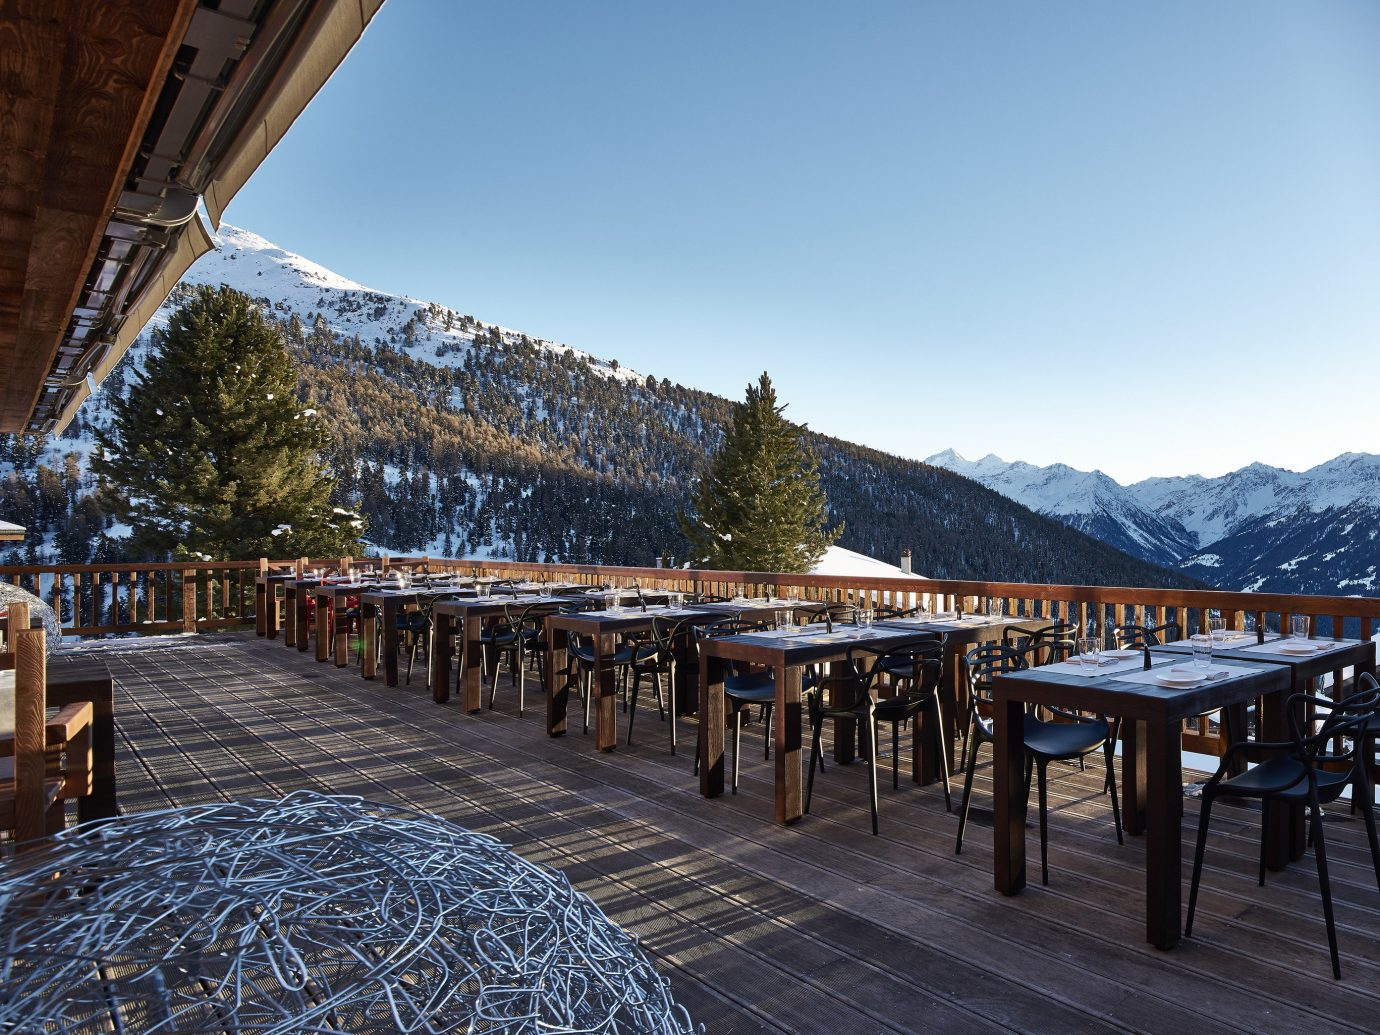 Boutique Hotels Hotels Outdoors + Adventure sky outdoor ground Winter snow chair mountainous landforms mountain Town mountain range wooden tree water real estate reflection landscape City evening cloud plant alps house bridge roof